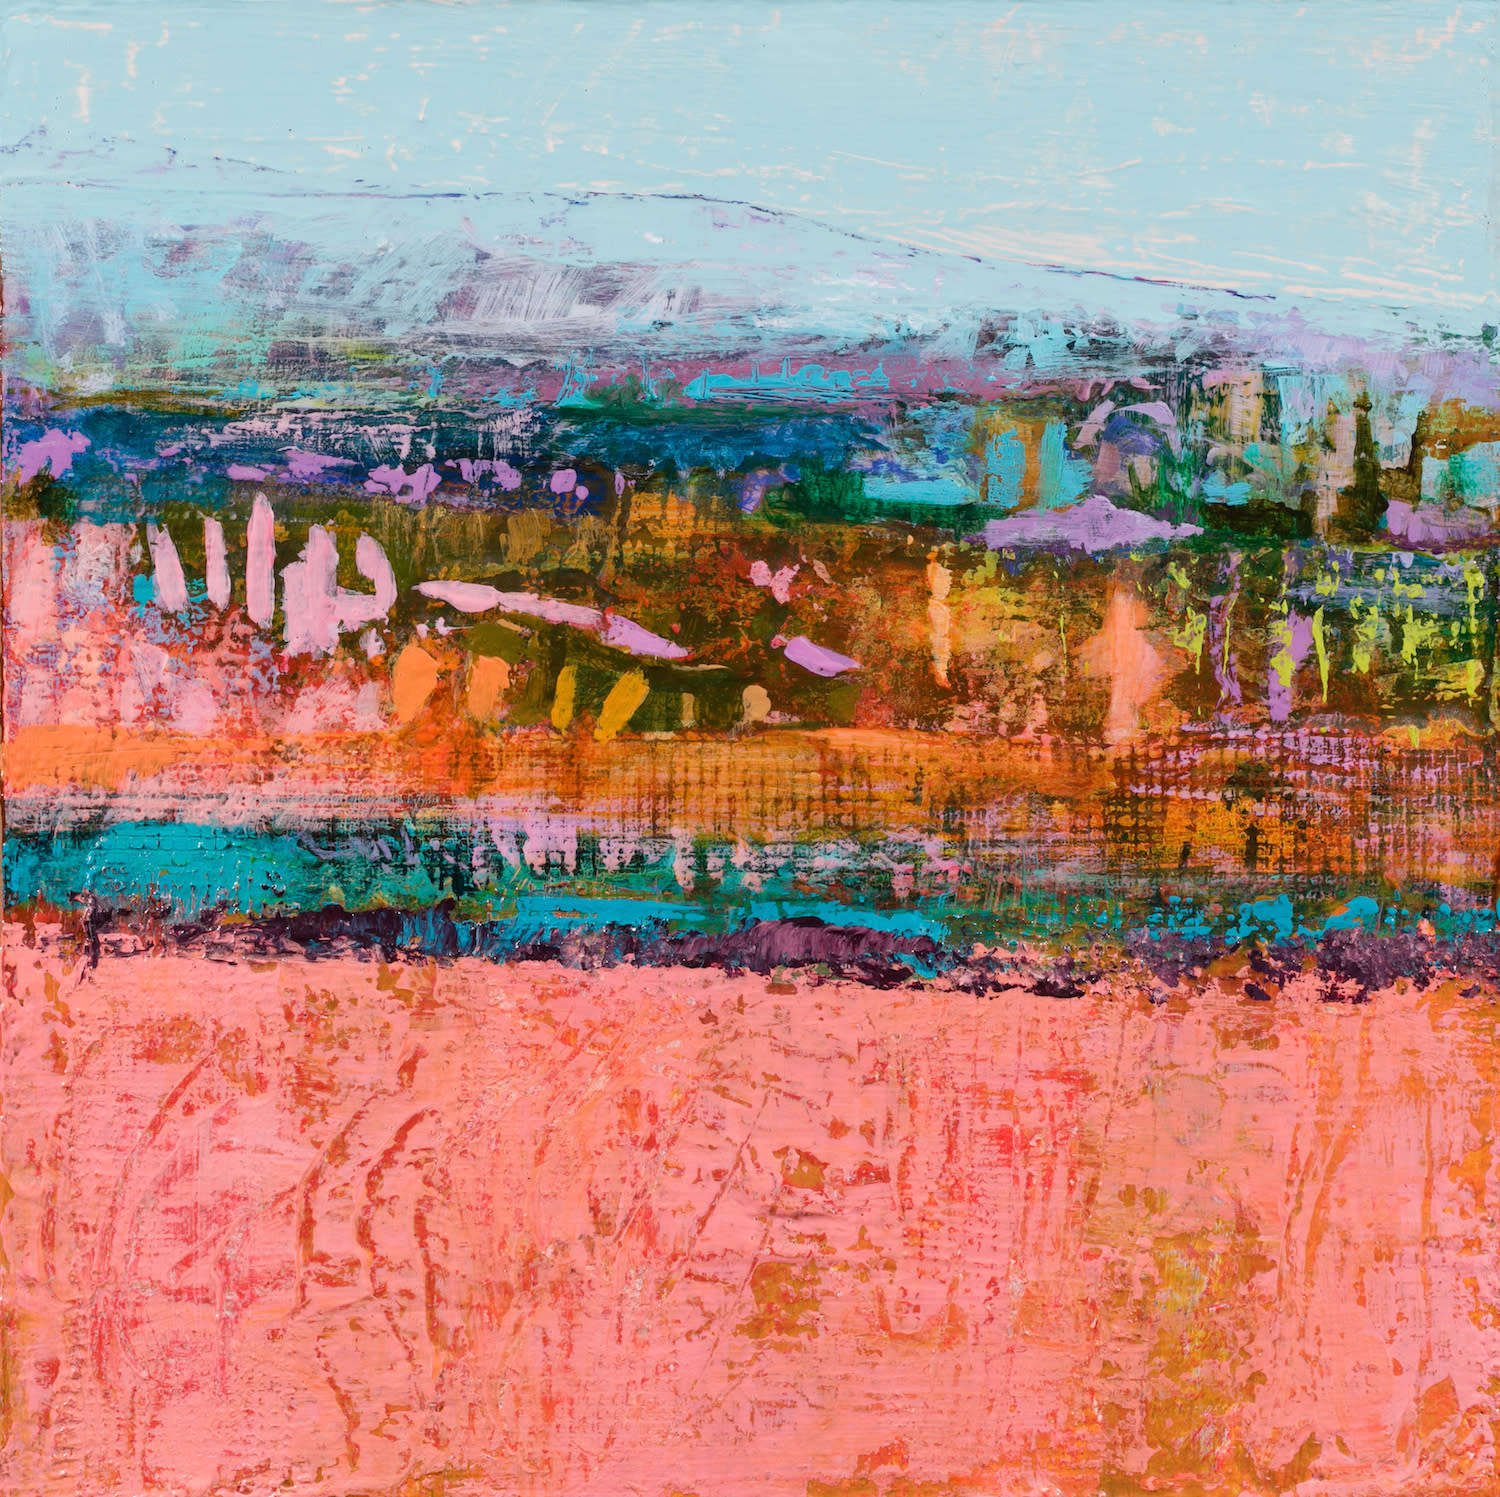 Abstract landscape painting southwestern landscape tracy lynn pristas colorado gallery ijiutj